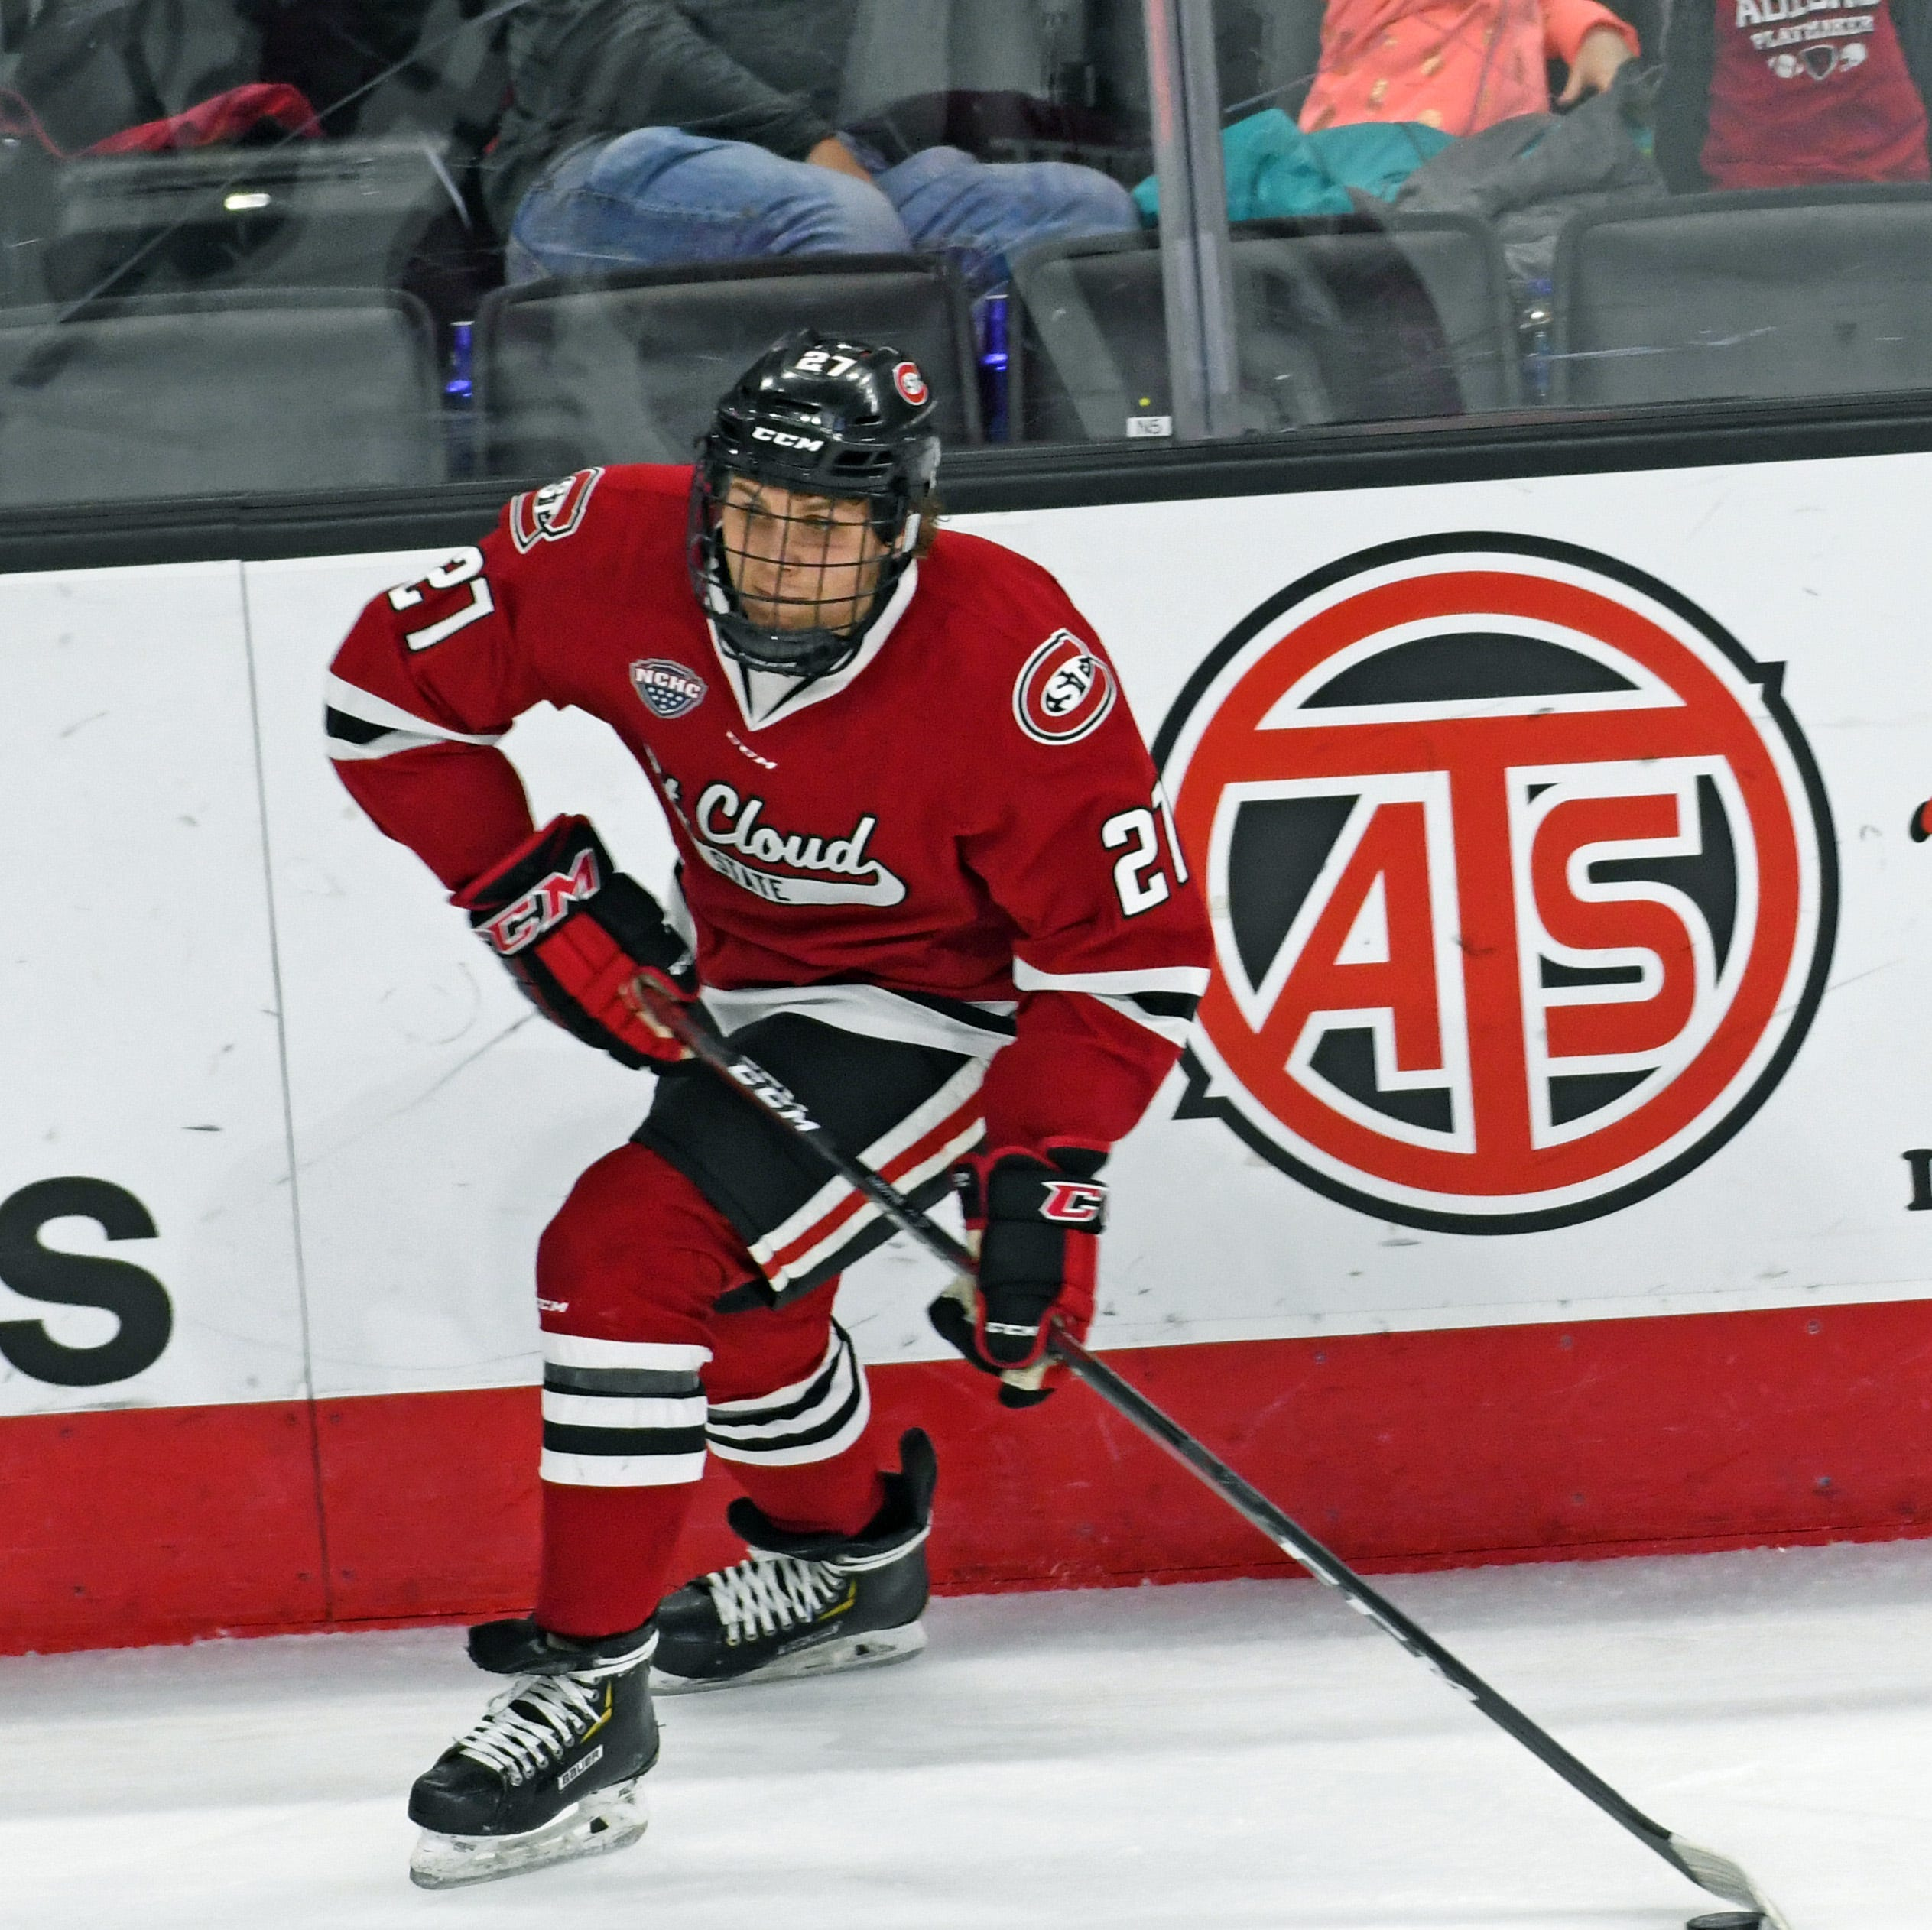 SCSU hockey players Blake Lizotte, Jacob Benson sign NHL deals